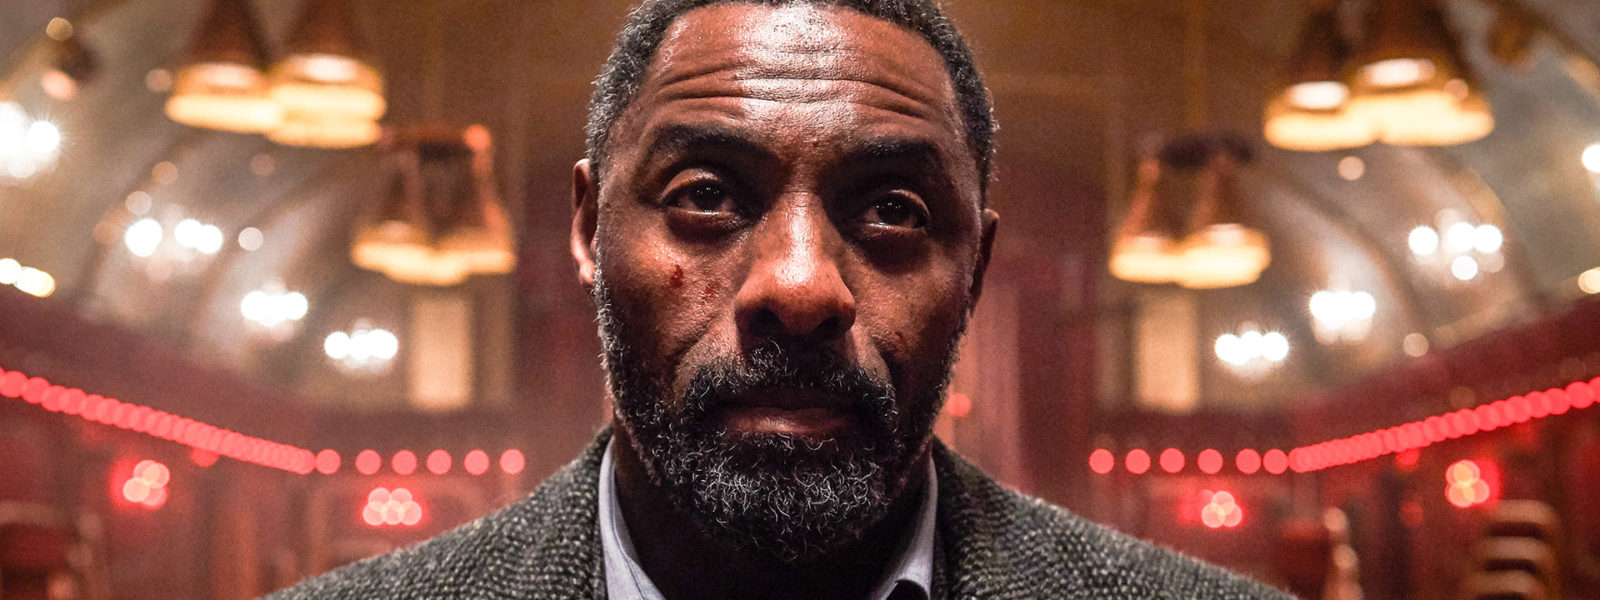 Luther_501_1920x1080